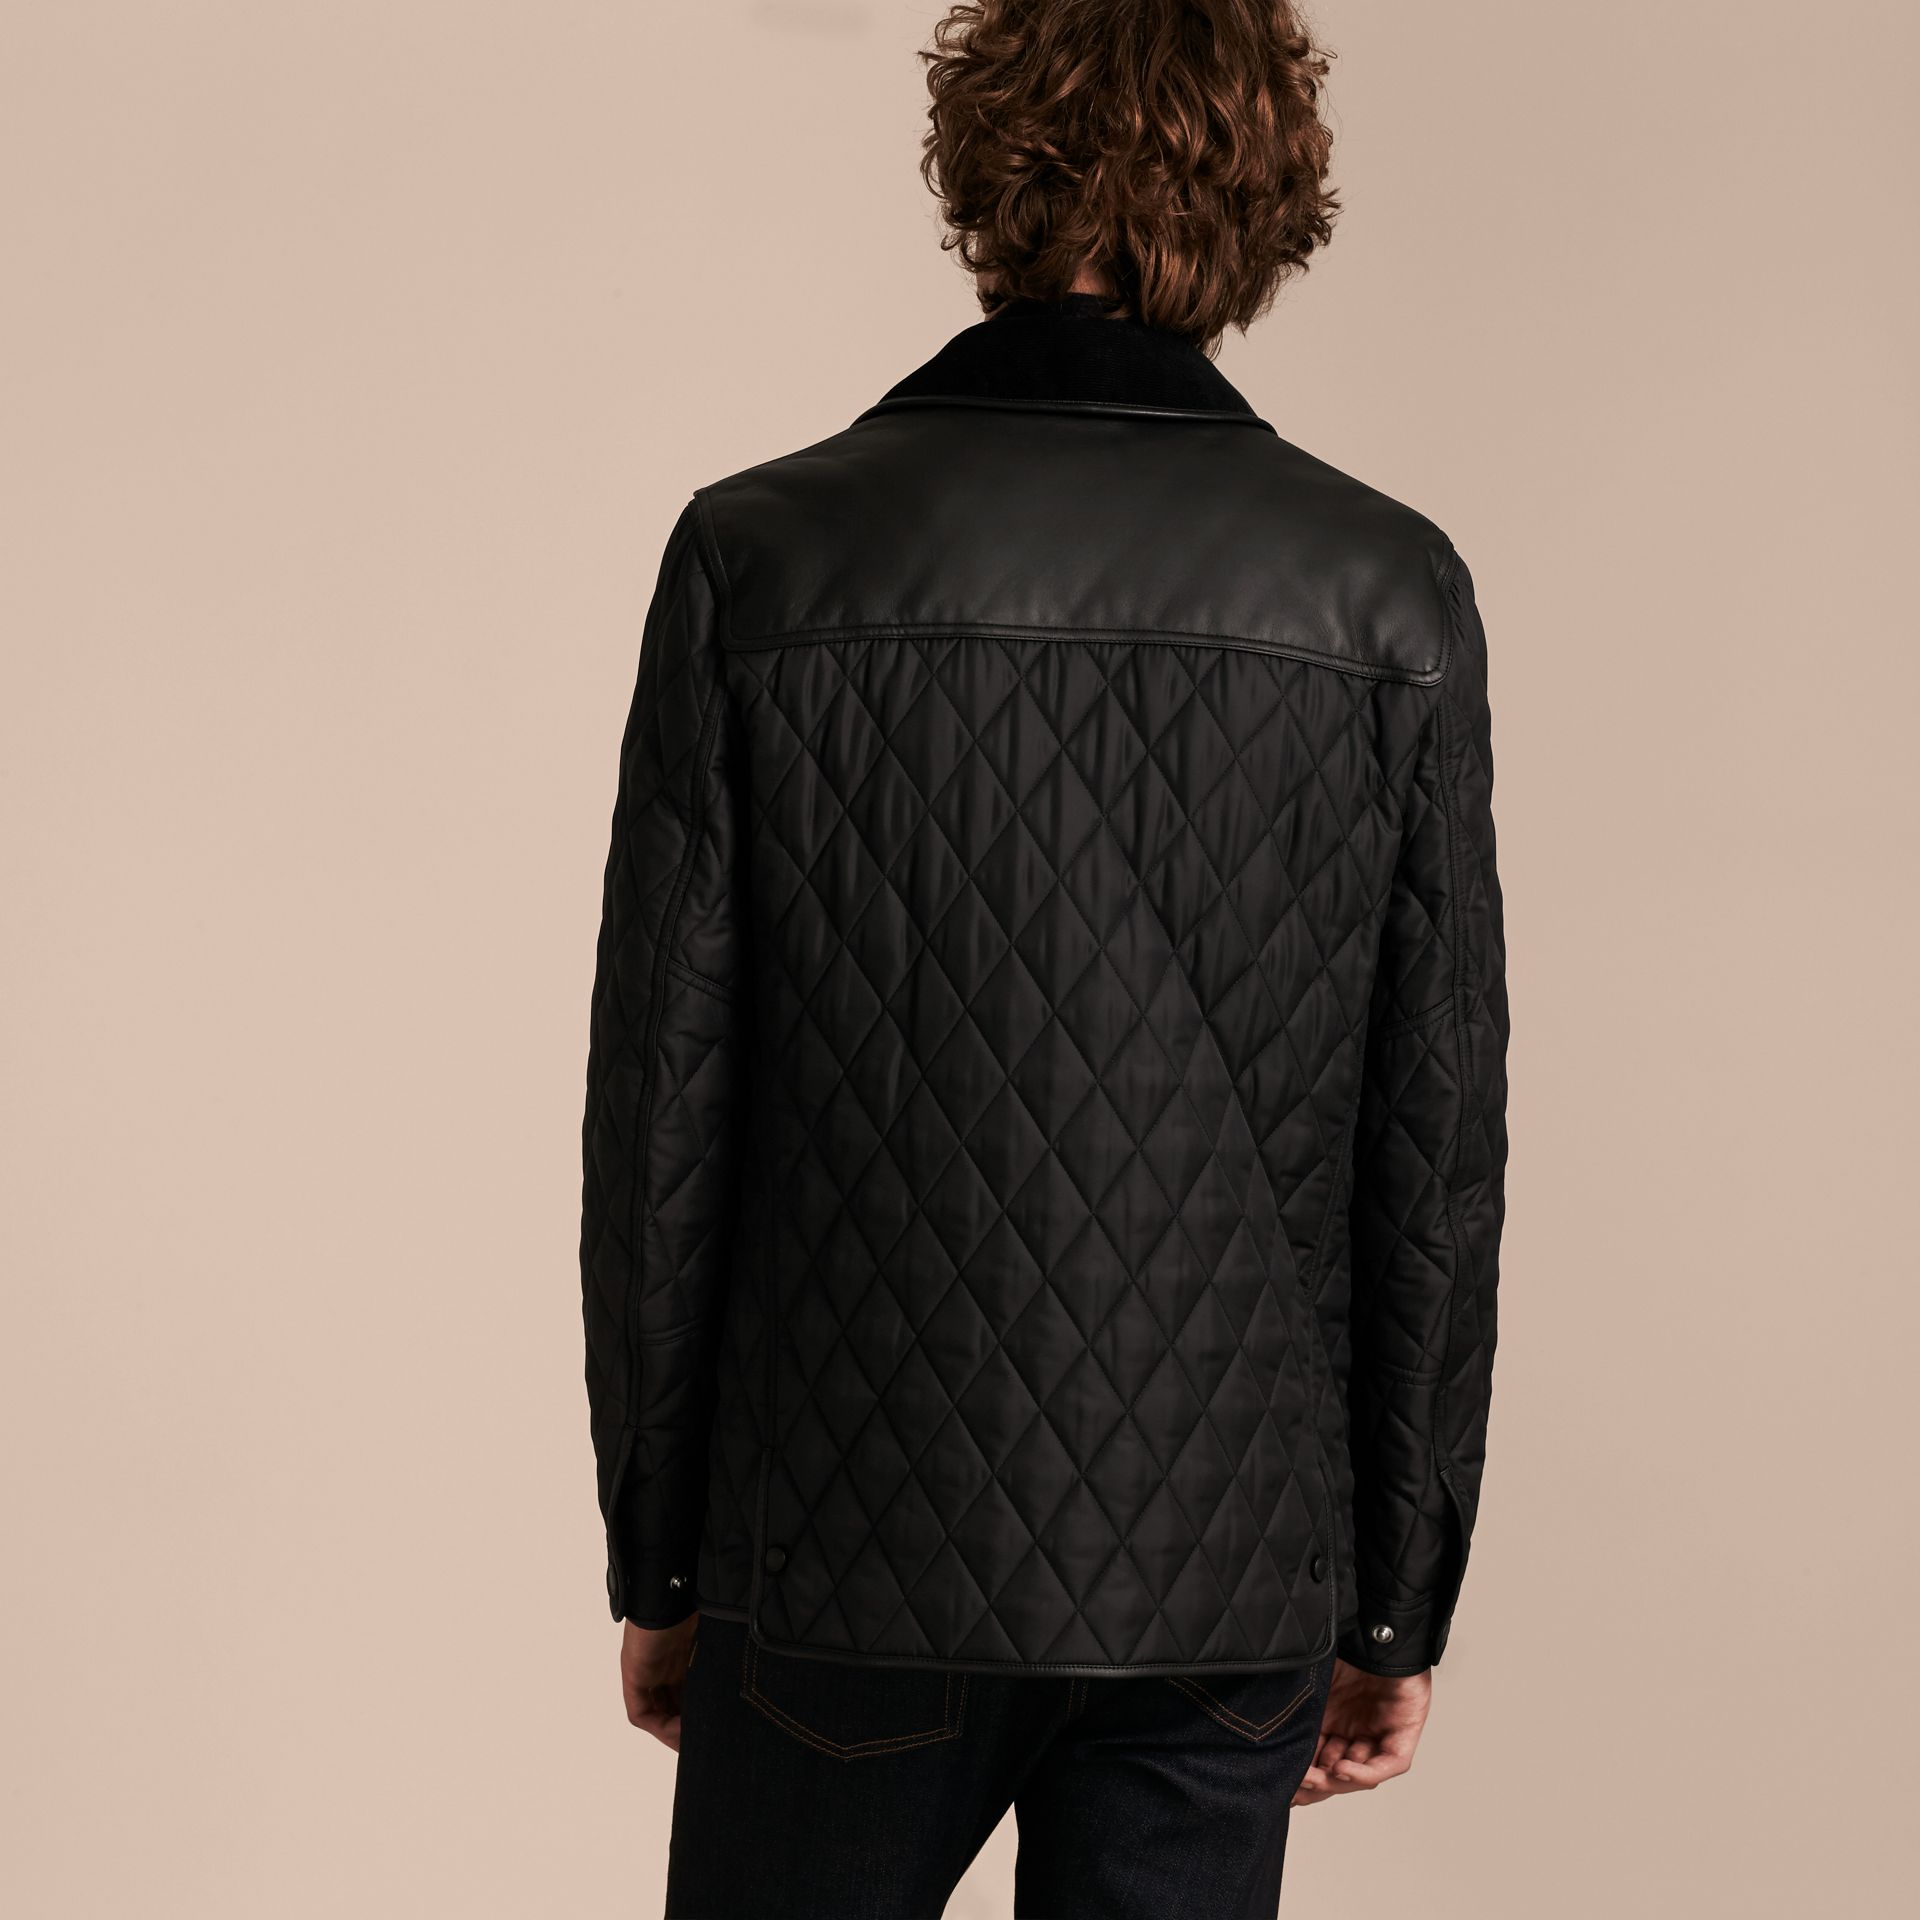 Lambskin Yoke Diamond Quilted Jacket - gallery image 3